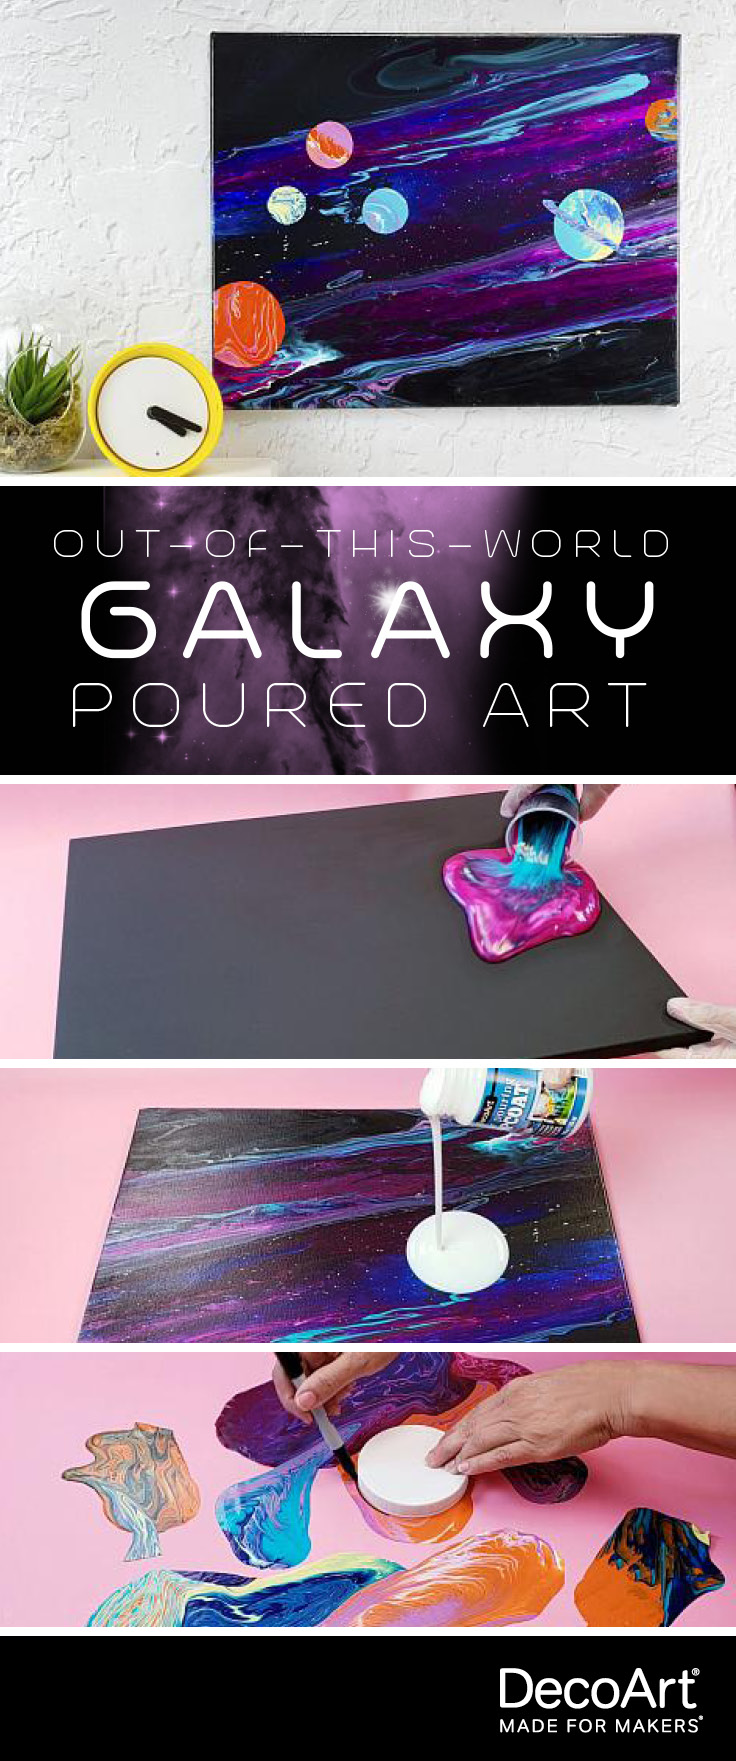 Out-of-This-World Galaxy Poured Art